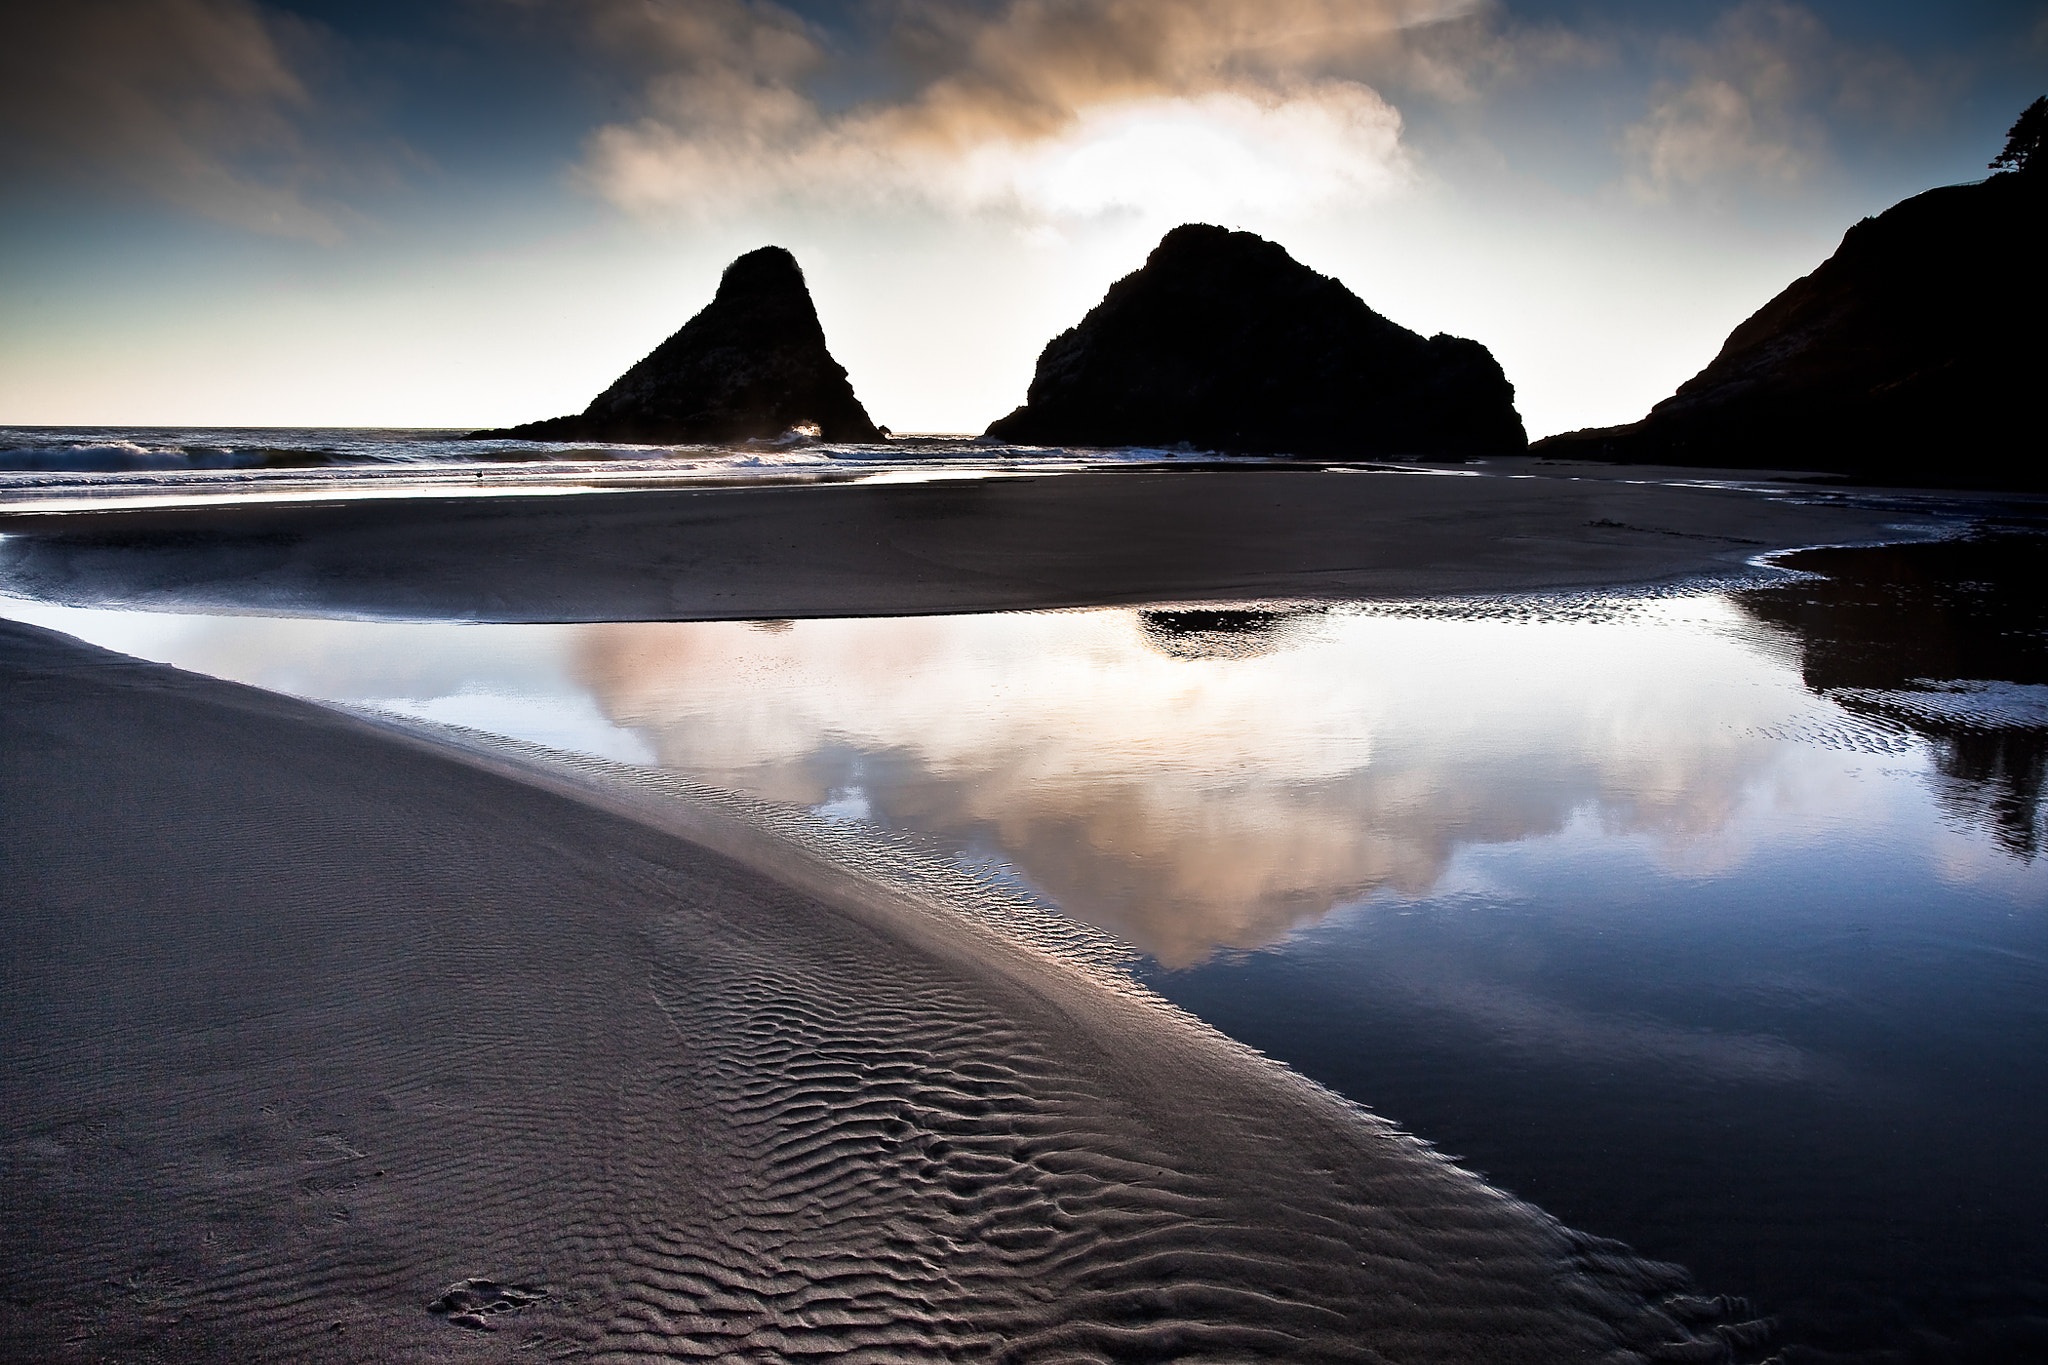 """Photograph """"Ripples in the Sand"""" by Mike Pillows on 500px"""